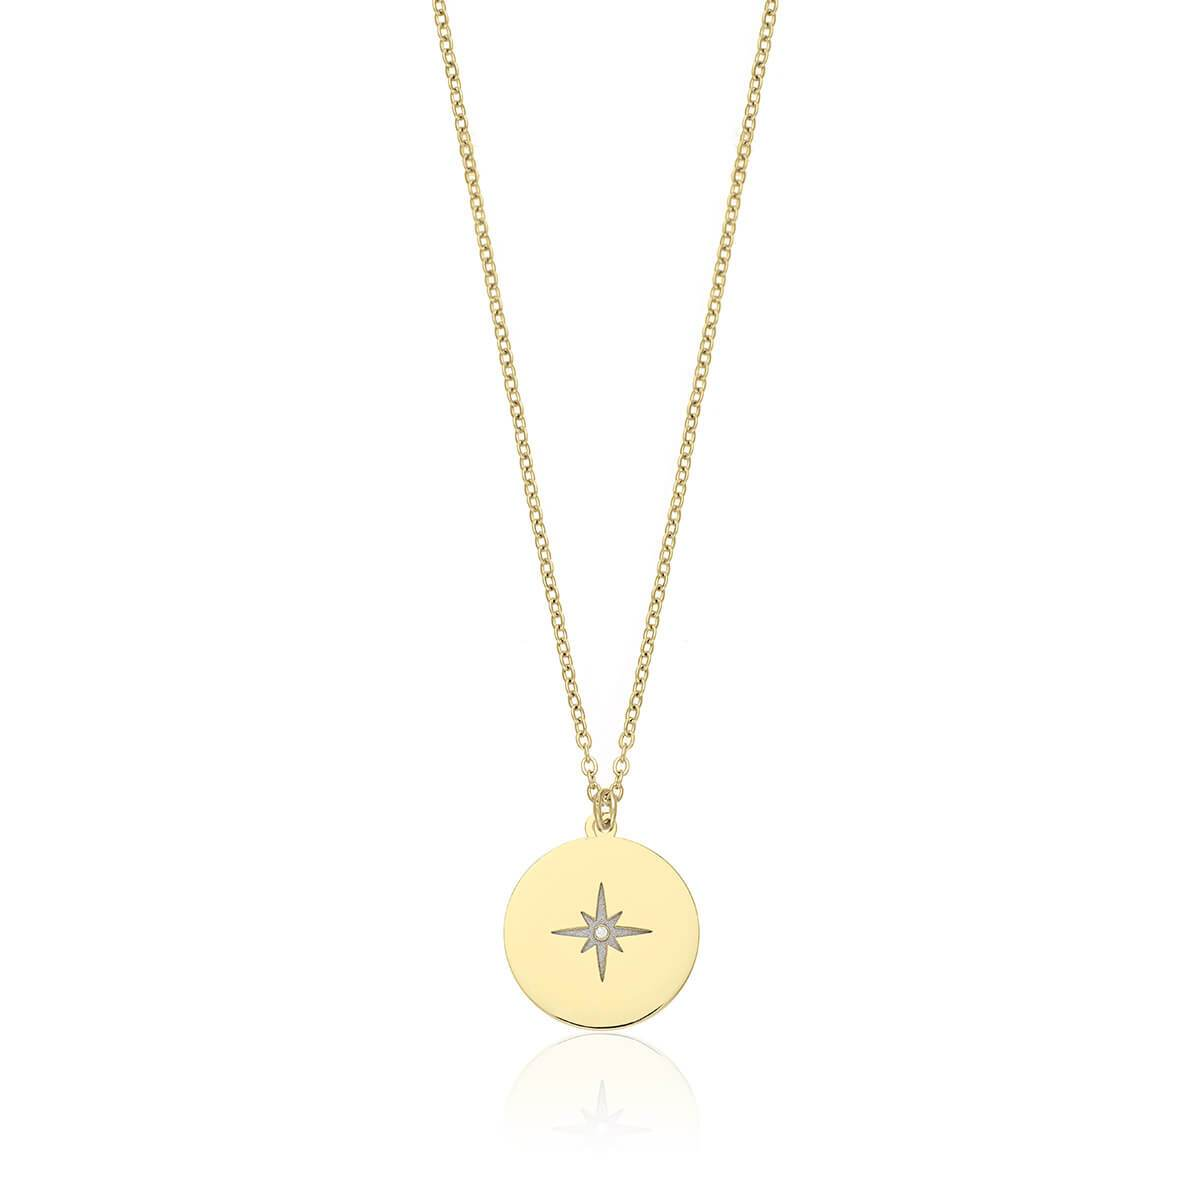 Collar ESTRELLA POLAR GOLD - Olivia Olash